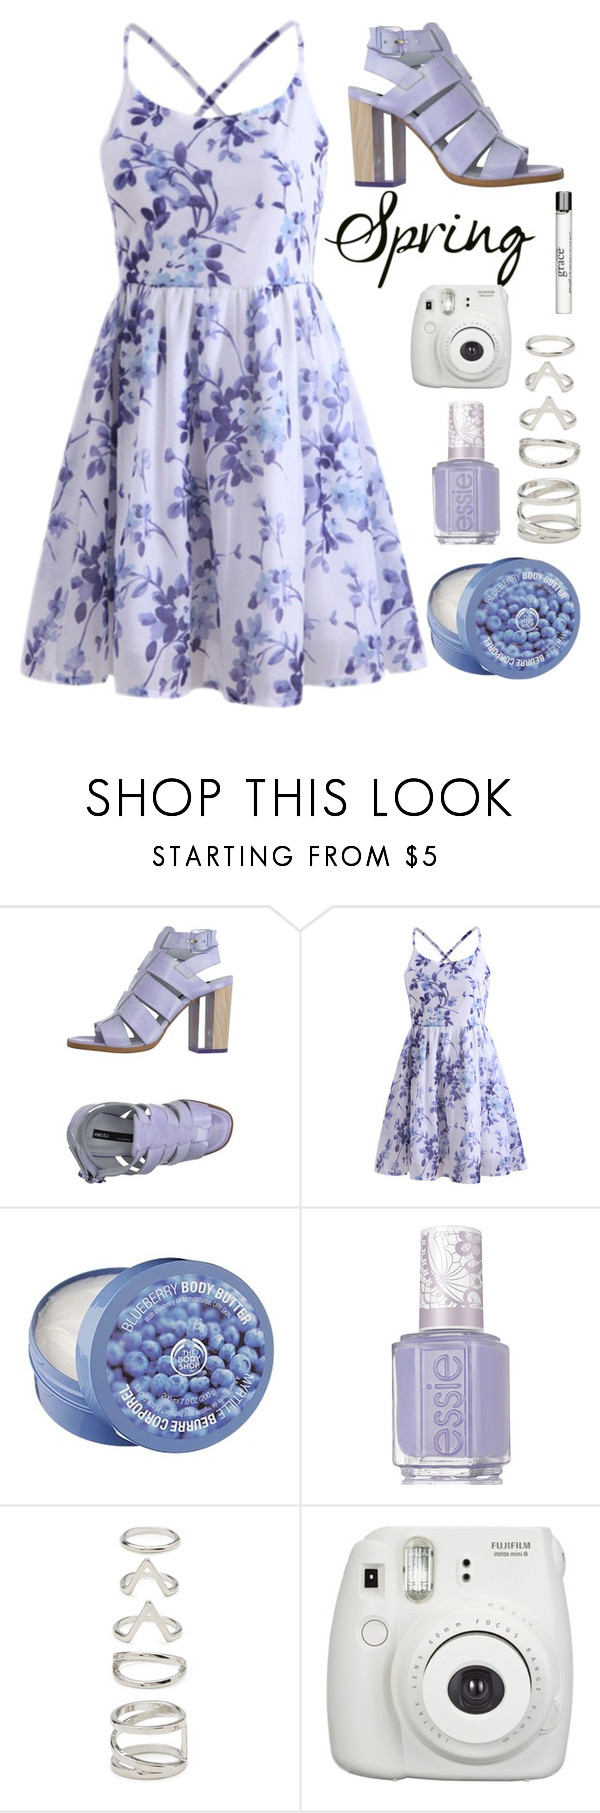 """Spring dress"" by leagelia ❤ liked on Polyvore featuring Miista, The Body Shop, Essie, Forever 21 and philosophy"